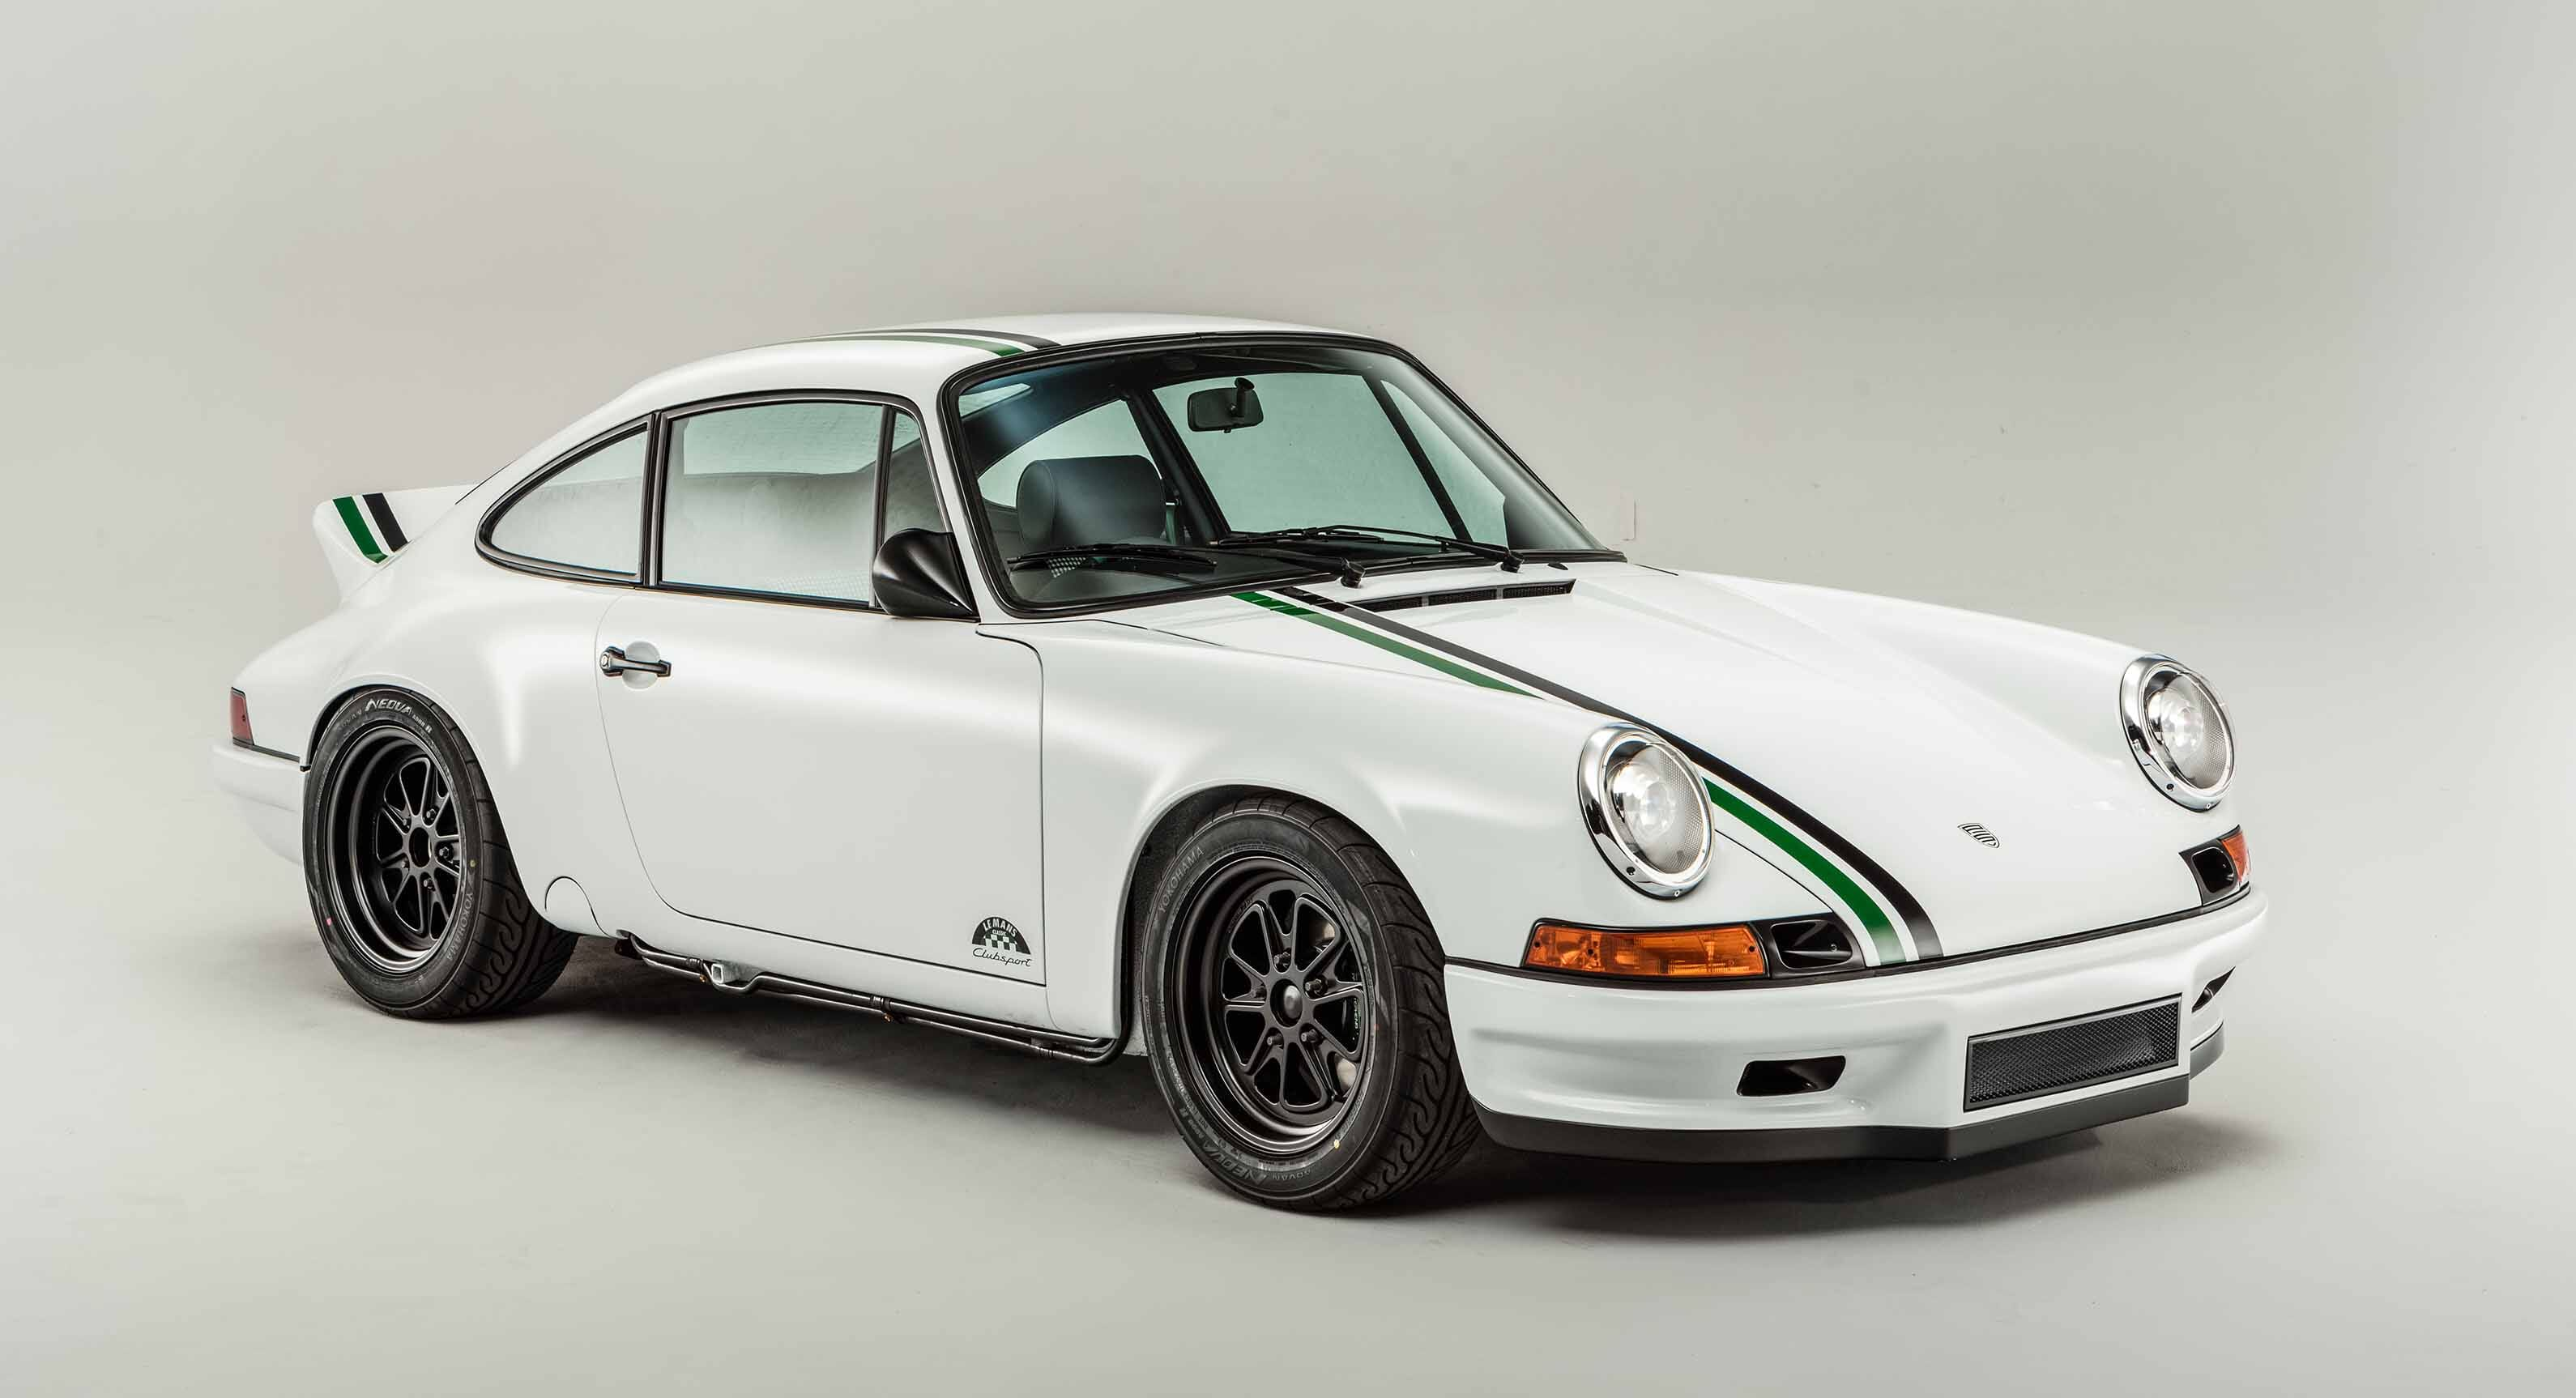 Every Porsche Enthusiast Wants A Paul Stephens AutoArt Le Mans Classic Clubsport